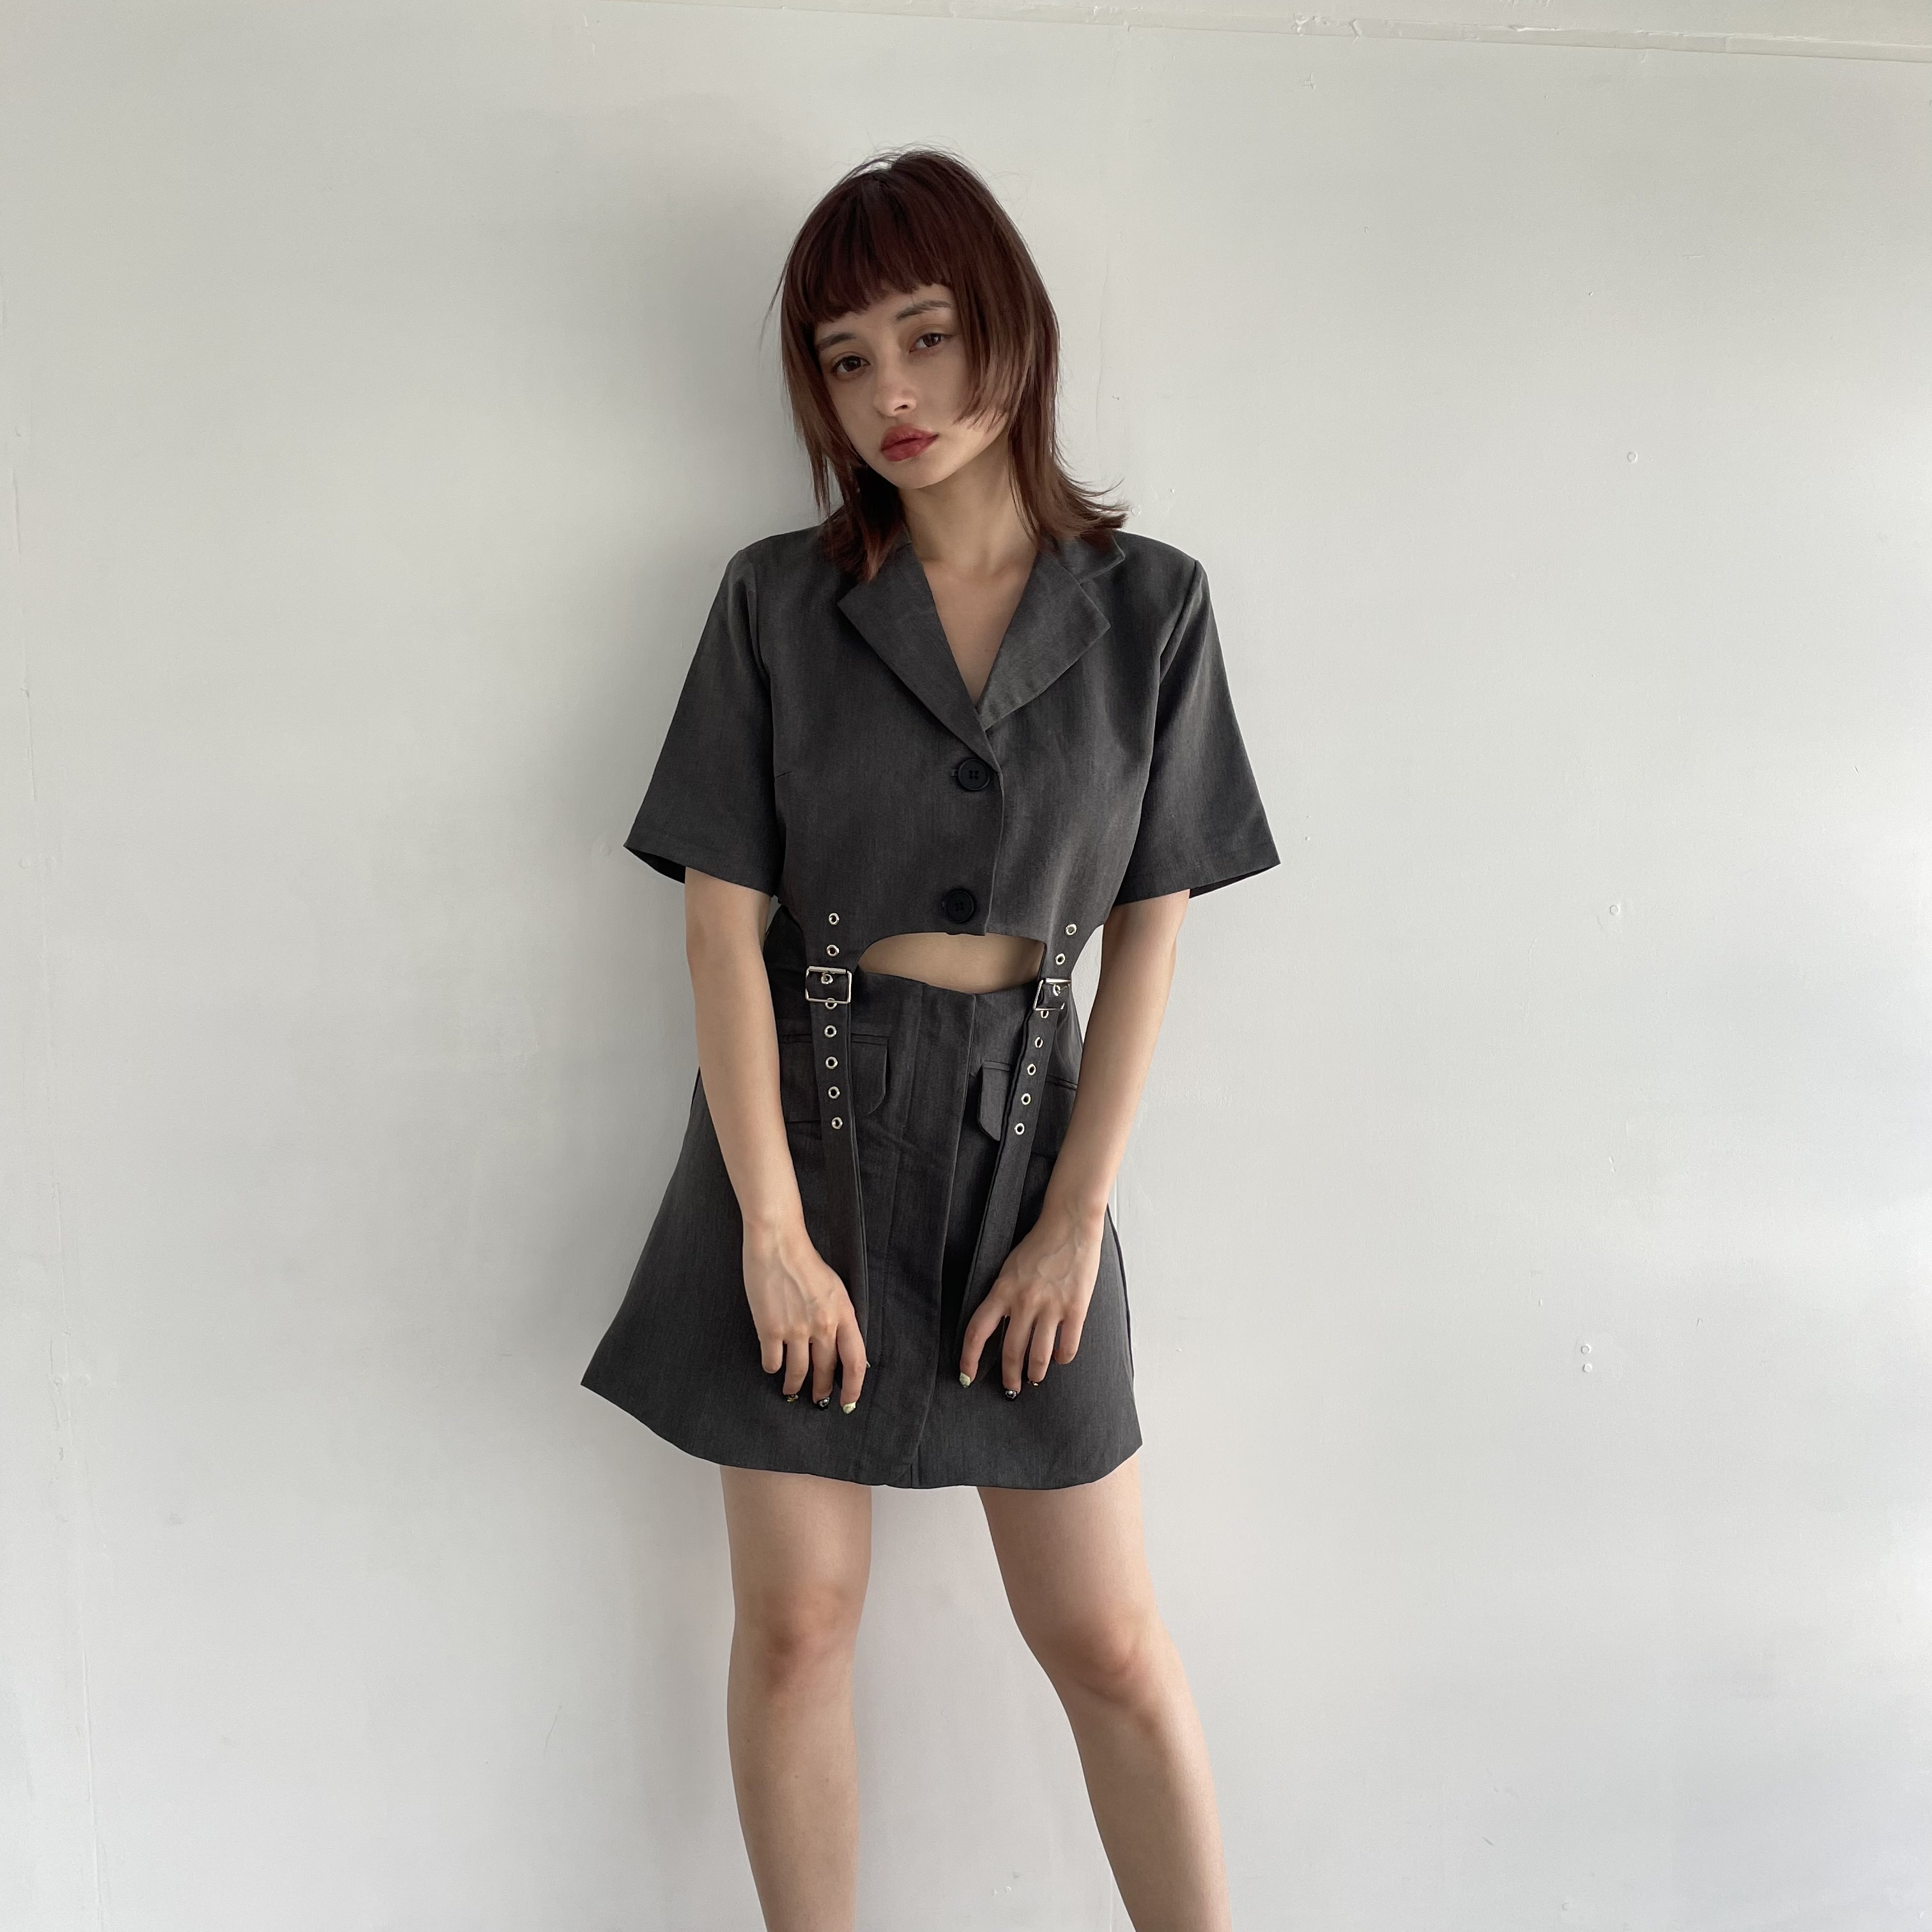 【Belle】separate suits onepiece